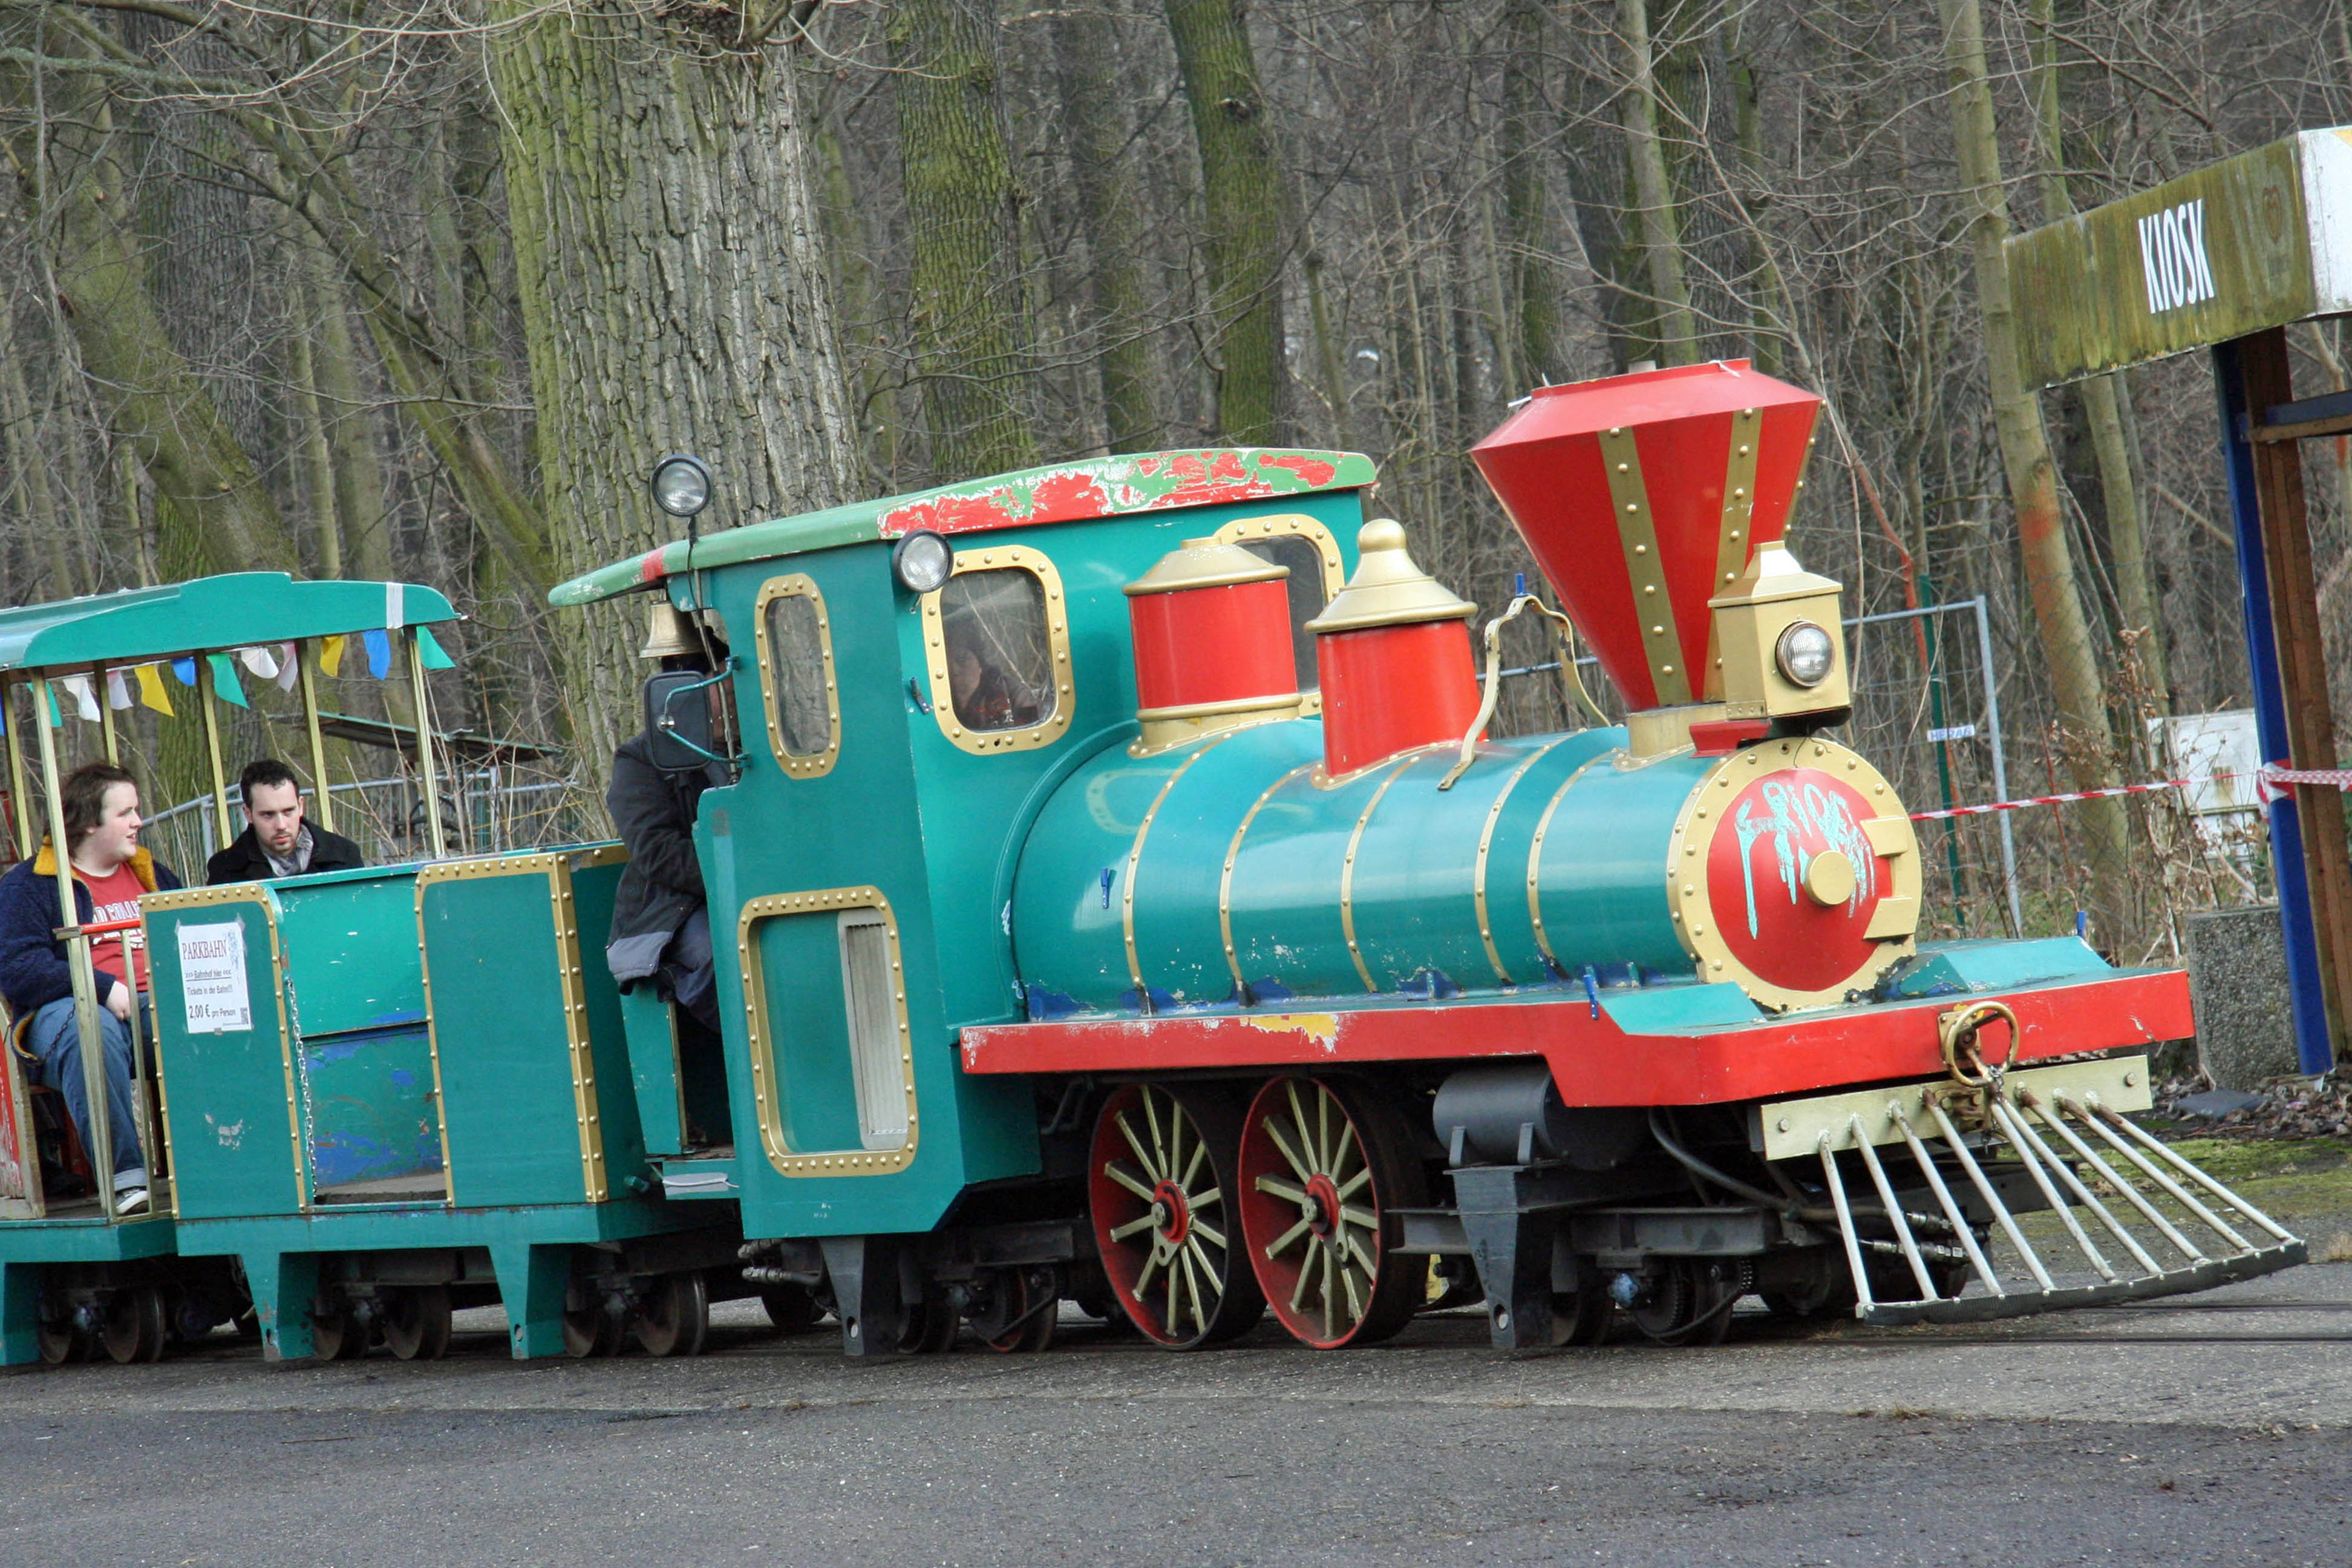 The train at Spreepark Plänterwald, an abandoned Theme Park in Berlin - now referred to as the Parkbahn but previously the Santa Fe Express